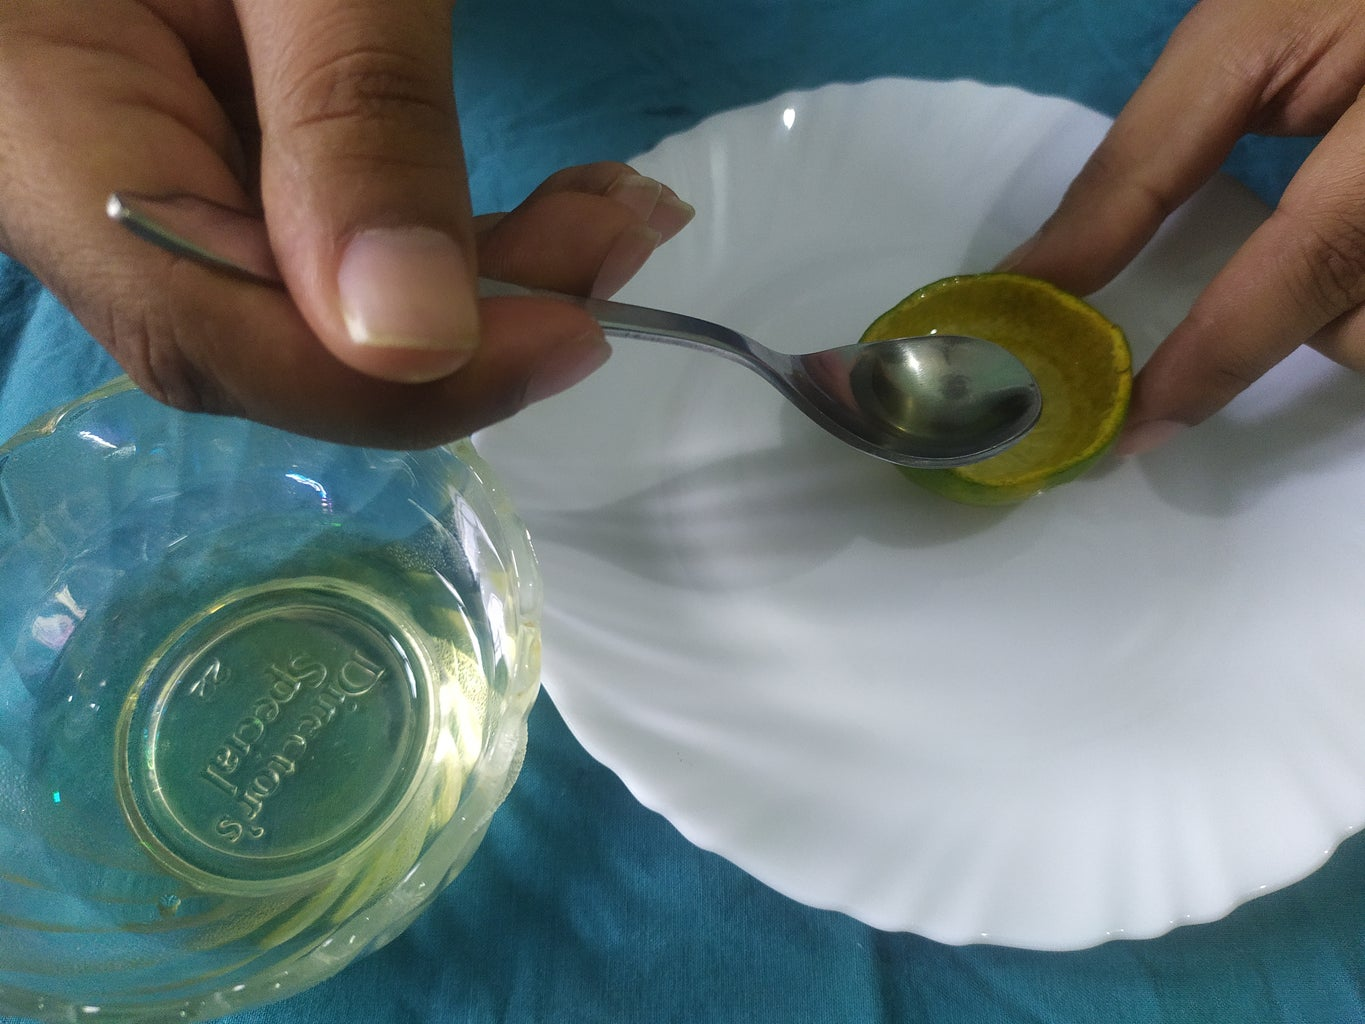 Fill This Peel Bowl With Clarified Butter and You Can Add Some Drops of Lemon and Orange Juice to Feel Fresh Fragrance